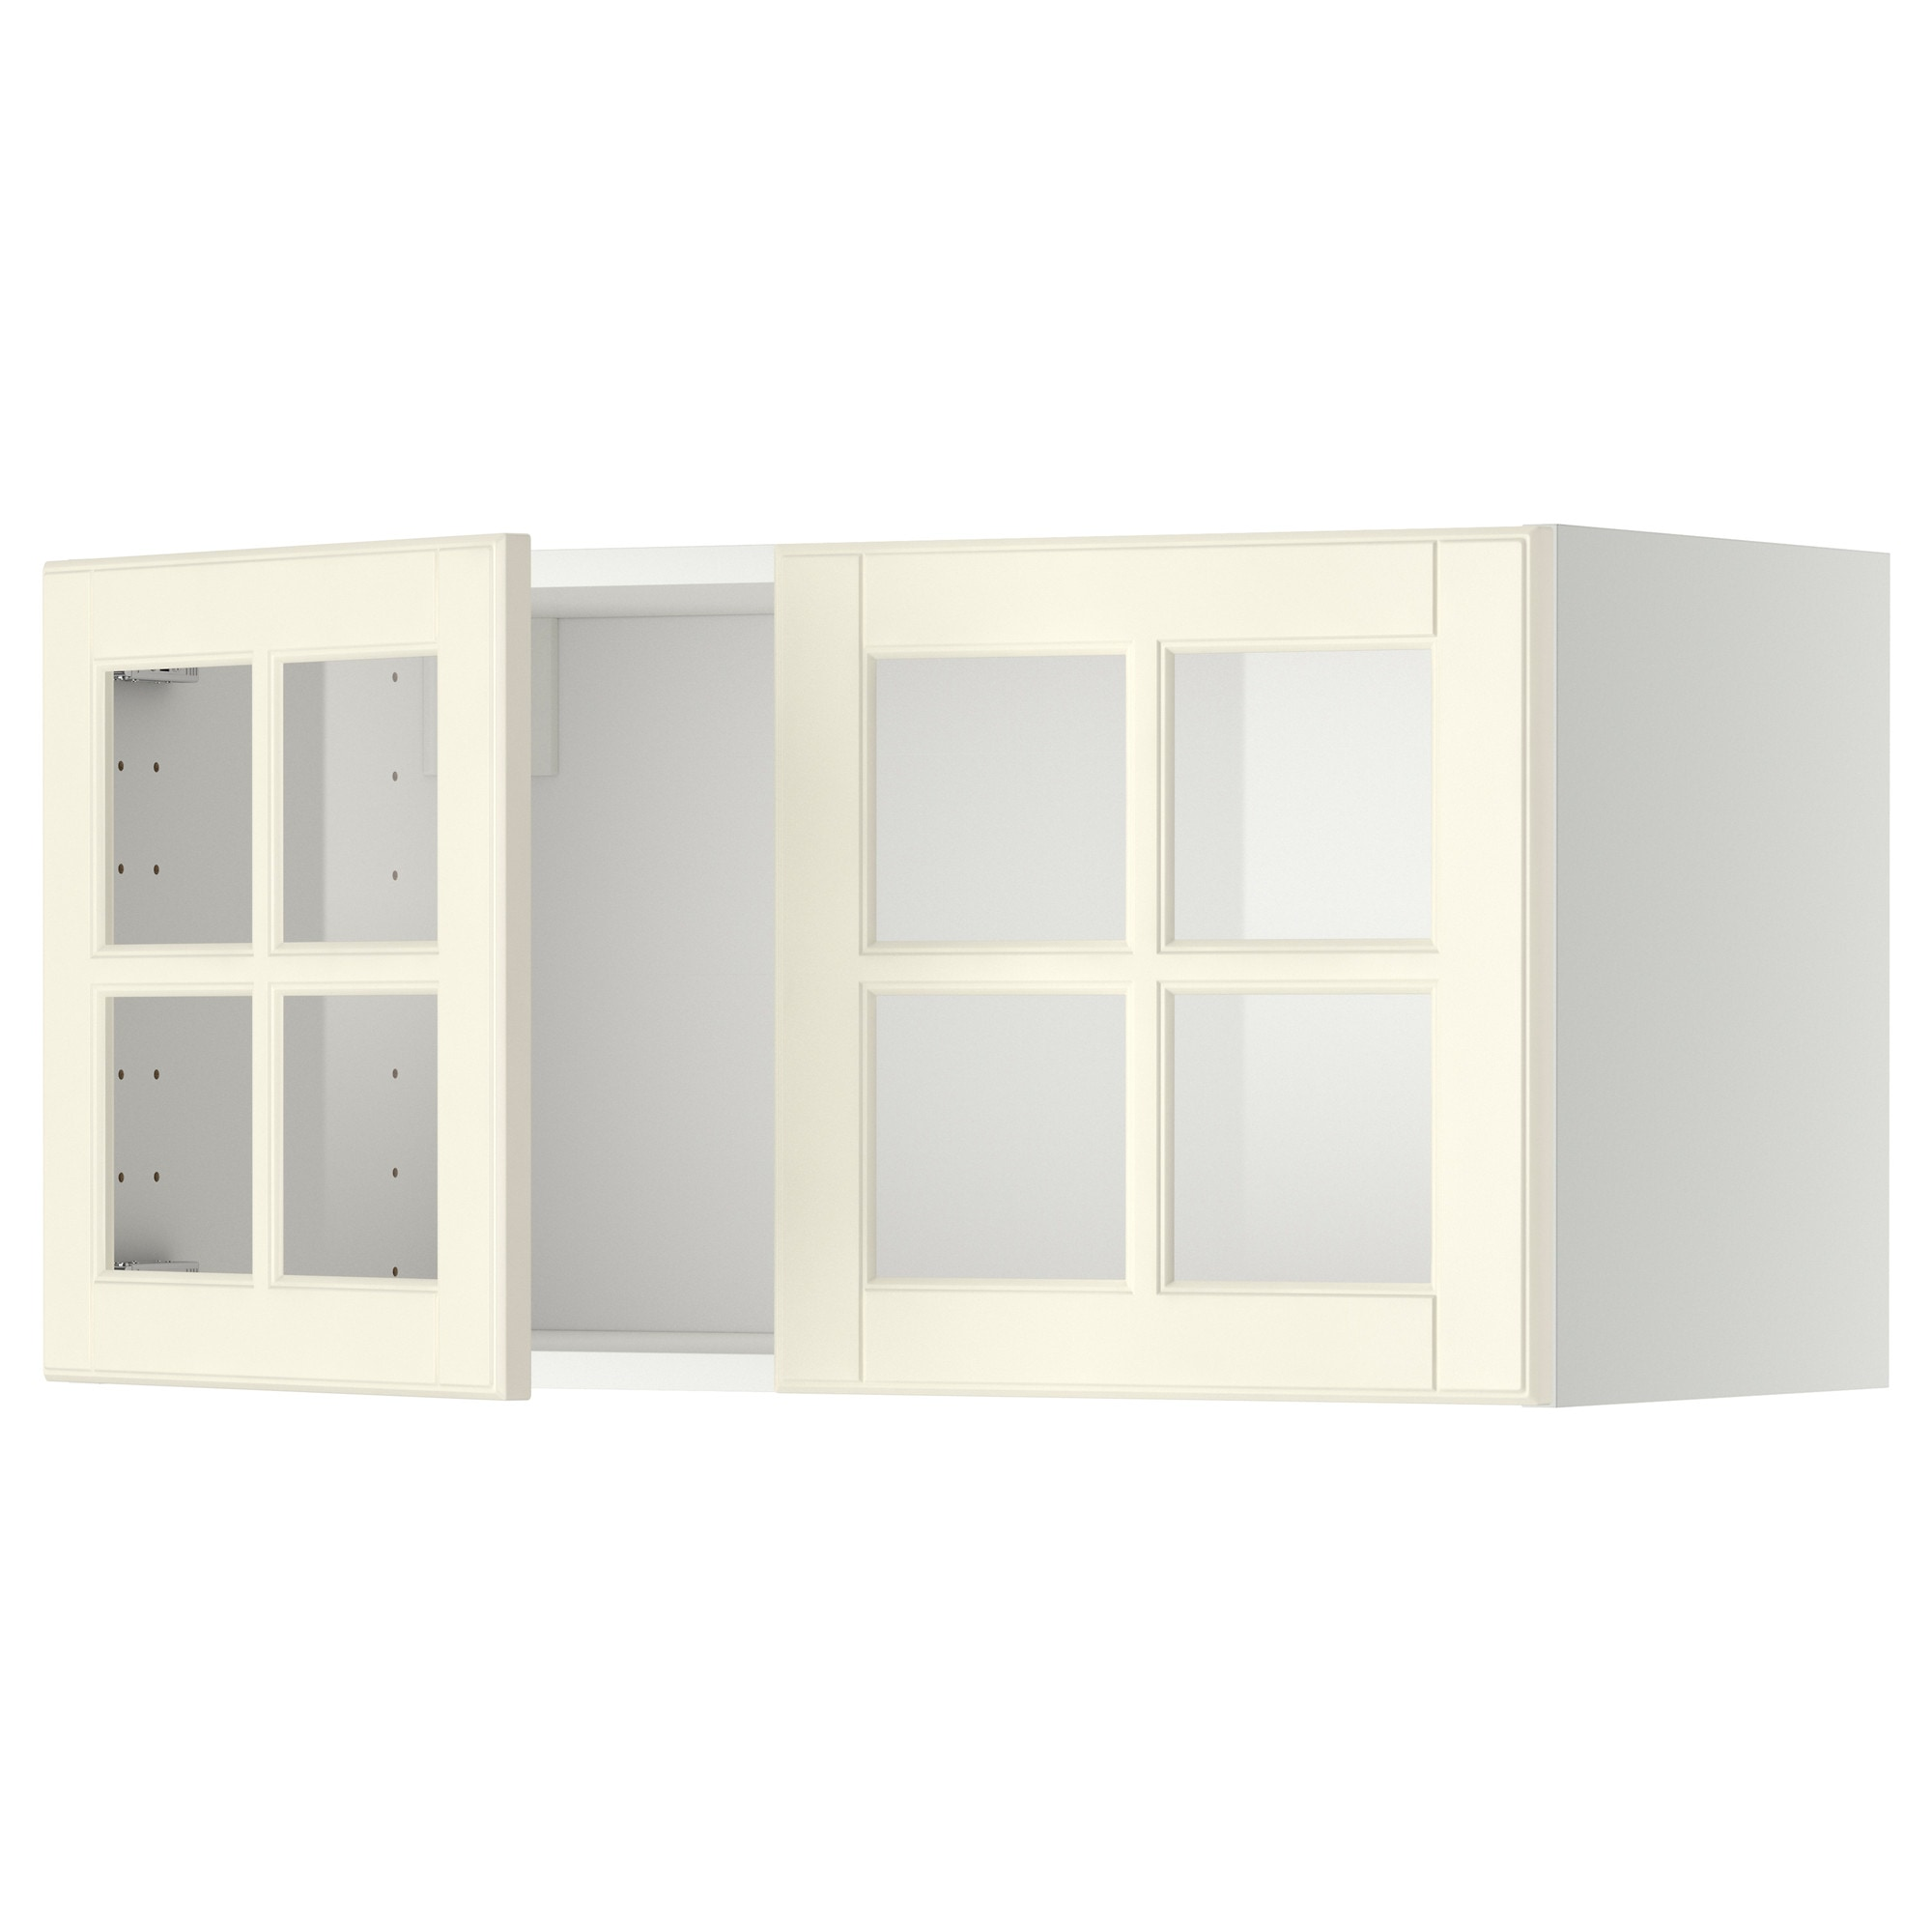 METOD Wall cabinet with 2 glass doors white Bodbyn off white IKEA